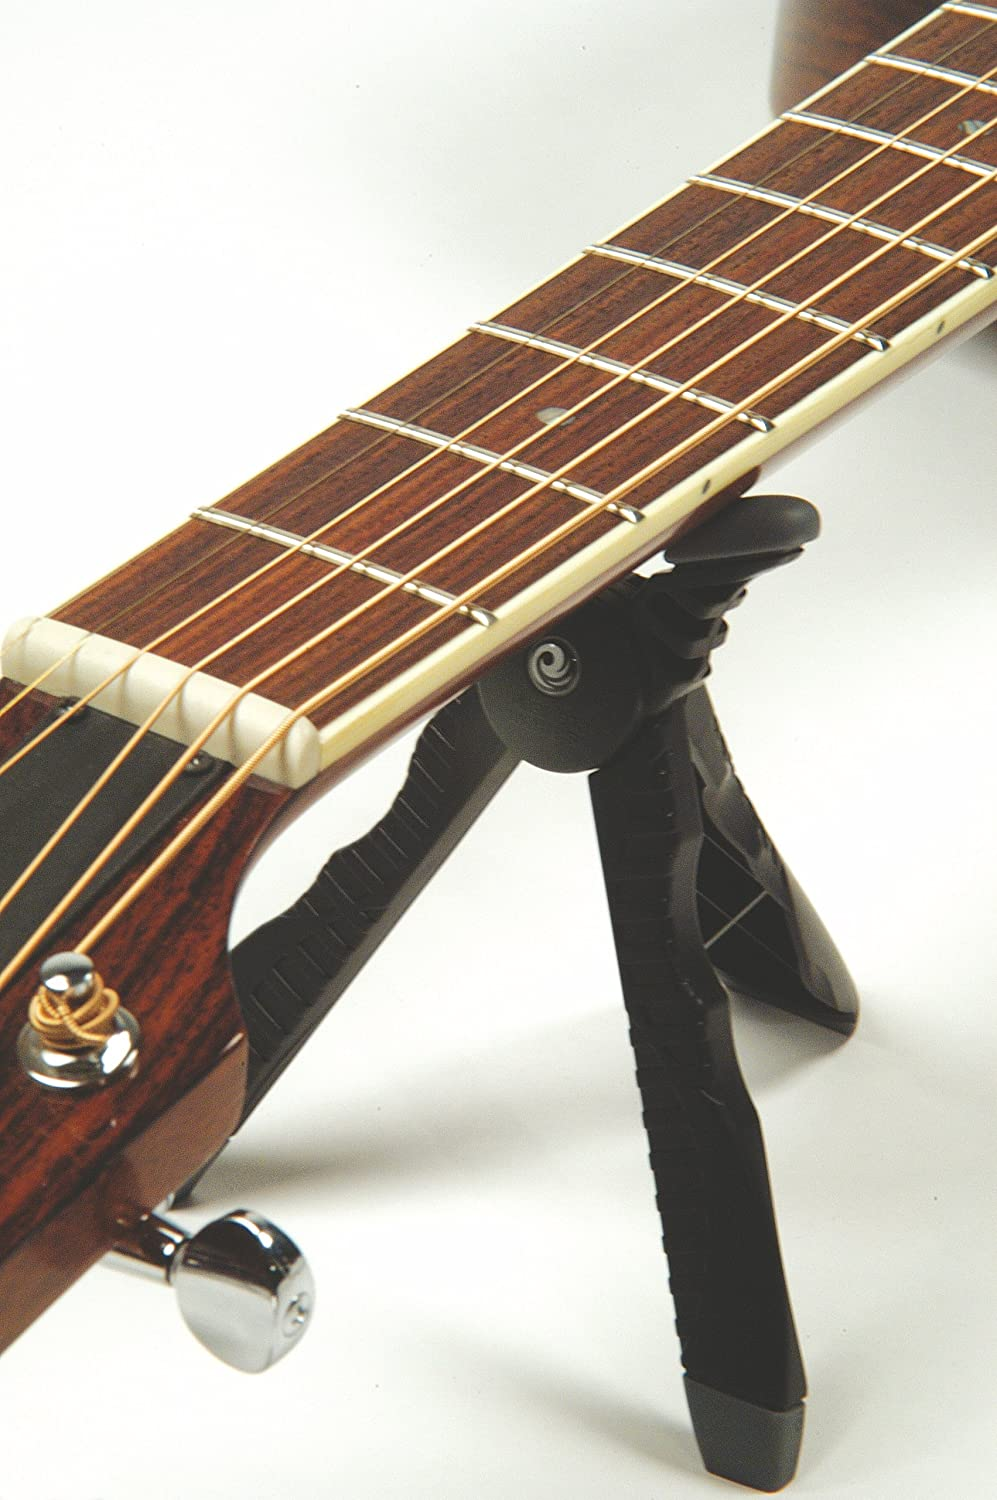 The Planet Waves Guitar Headstand In Use